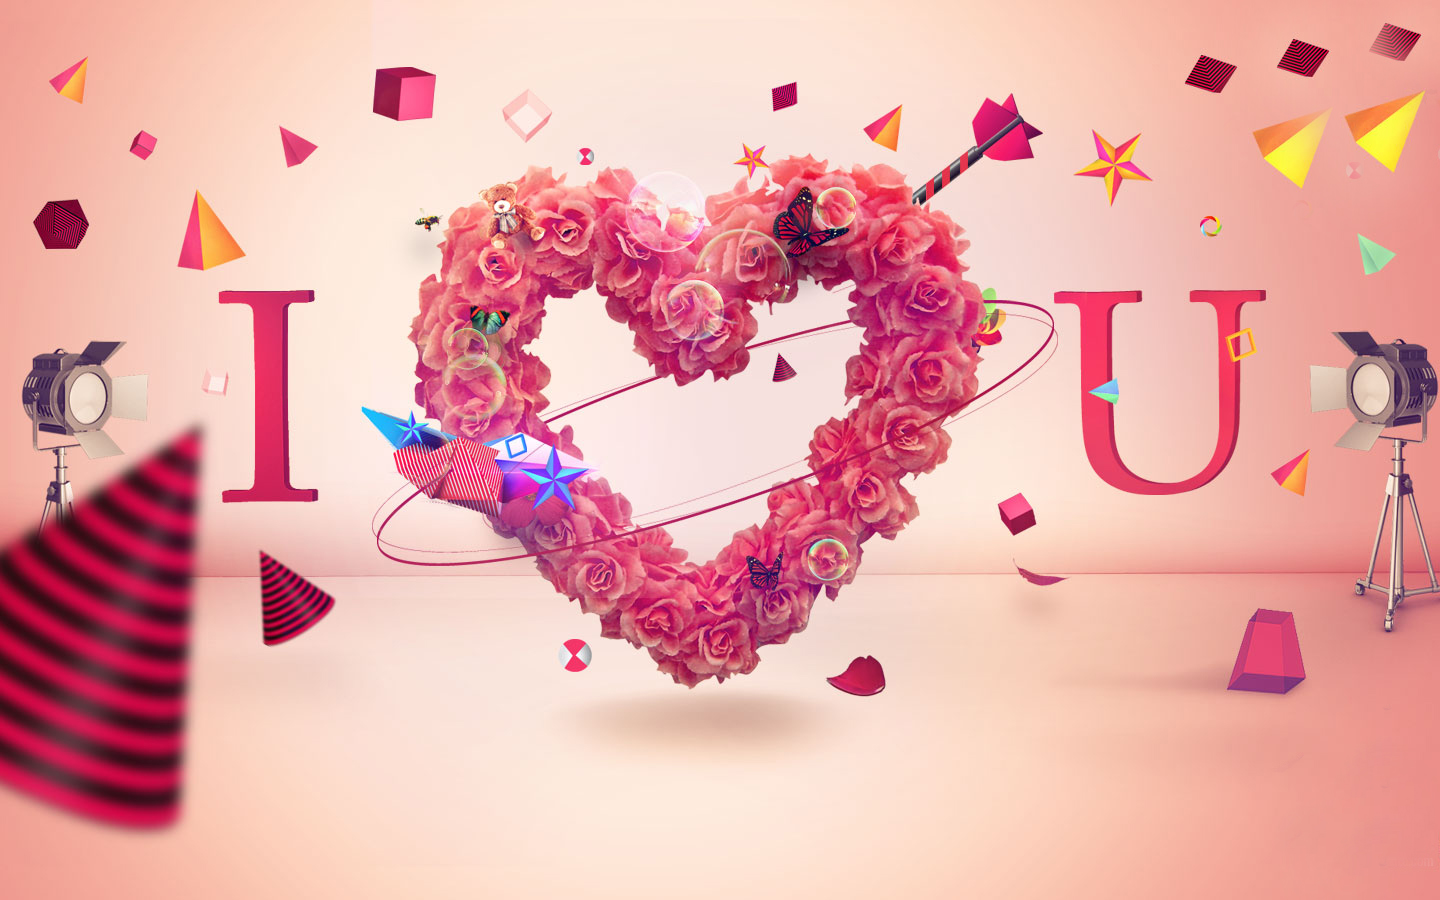 Free Download Wallpapers Of Love Download 71 1440x900 For Your